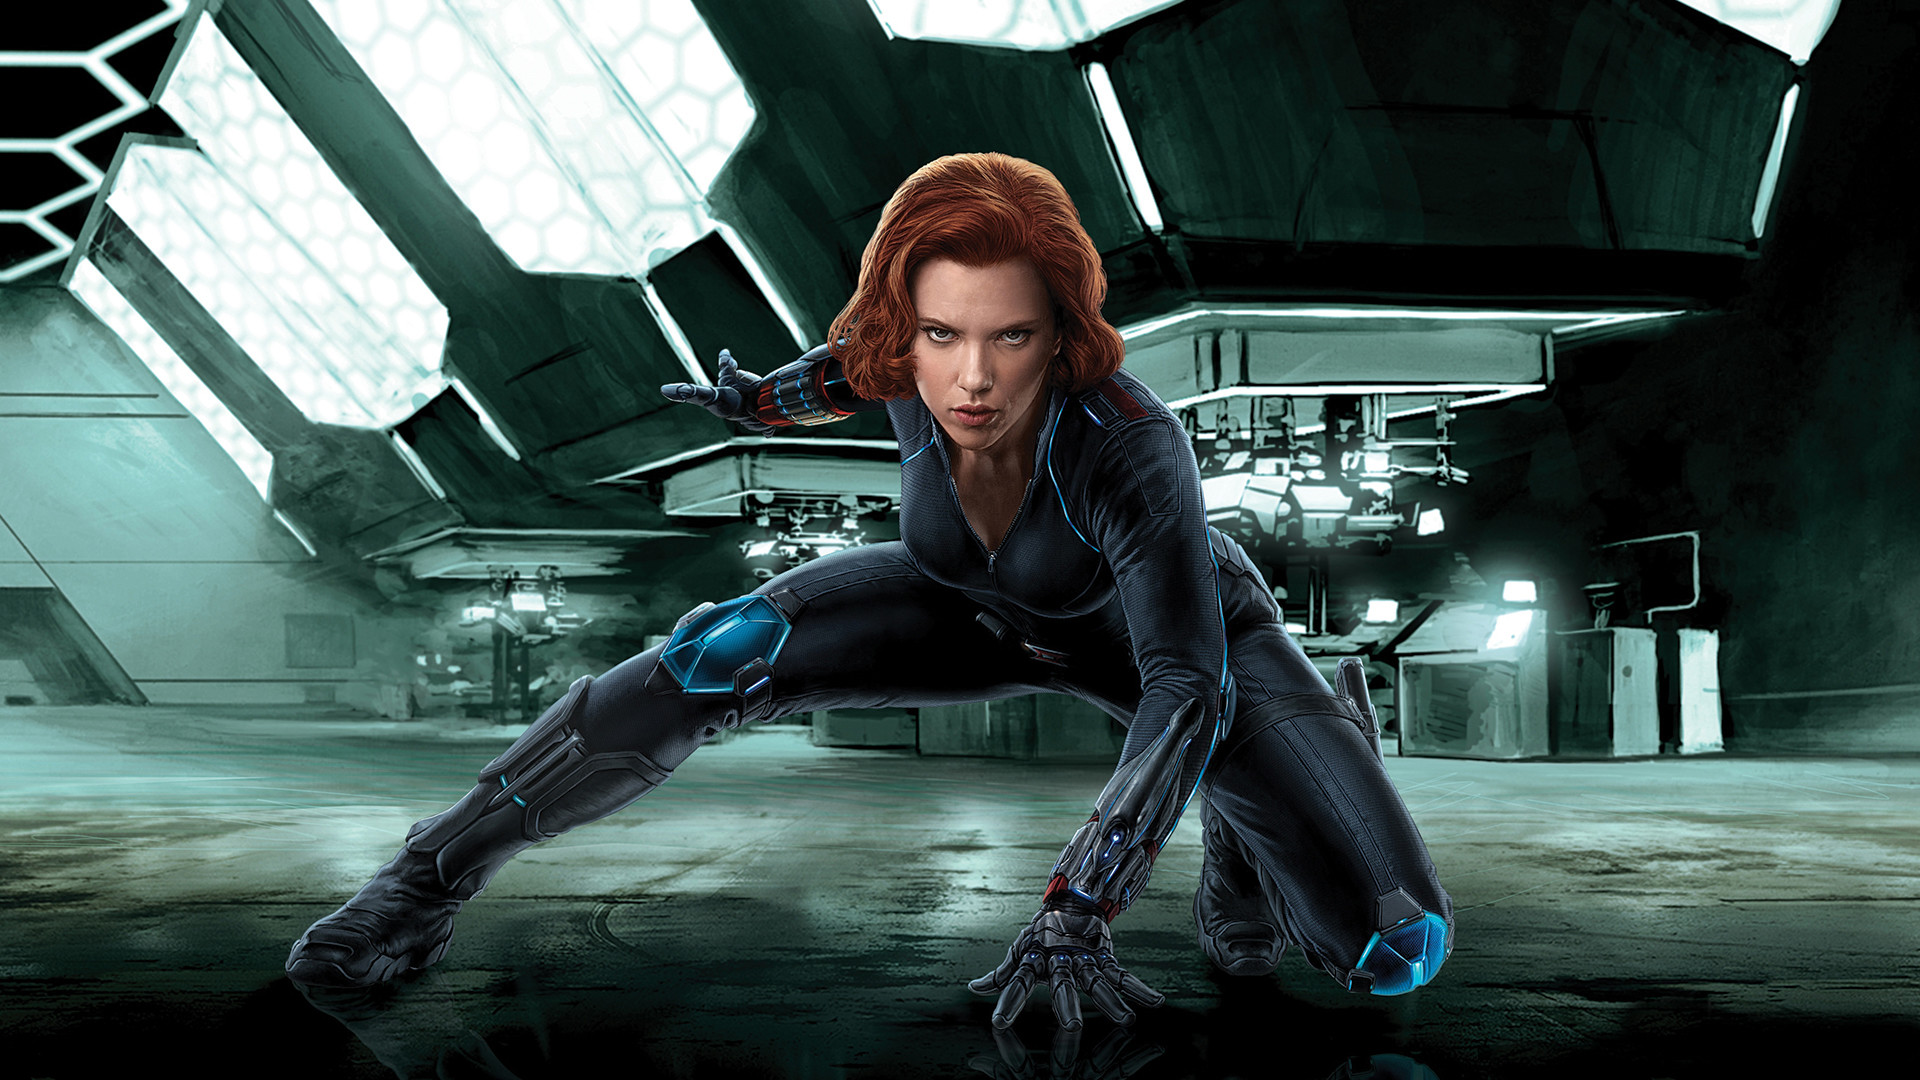 1920x1080 Black Widow Avengers Age Of Ultron Movie Wallpapers